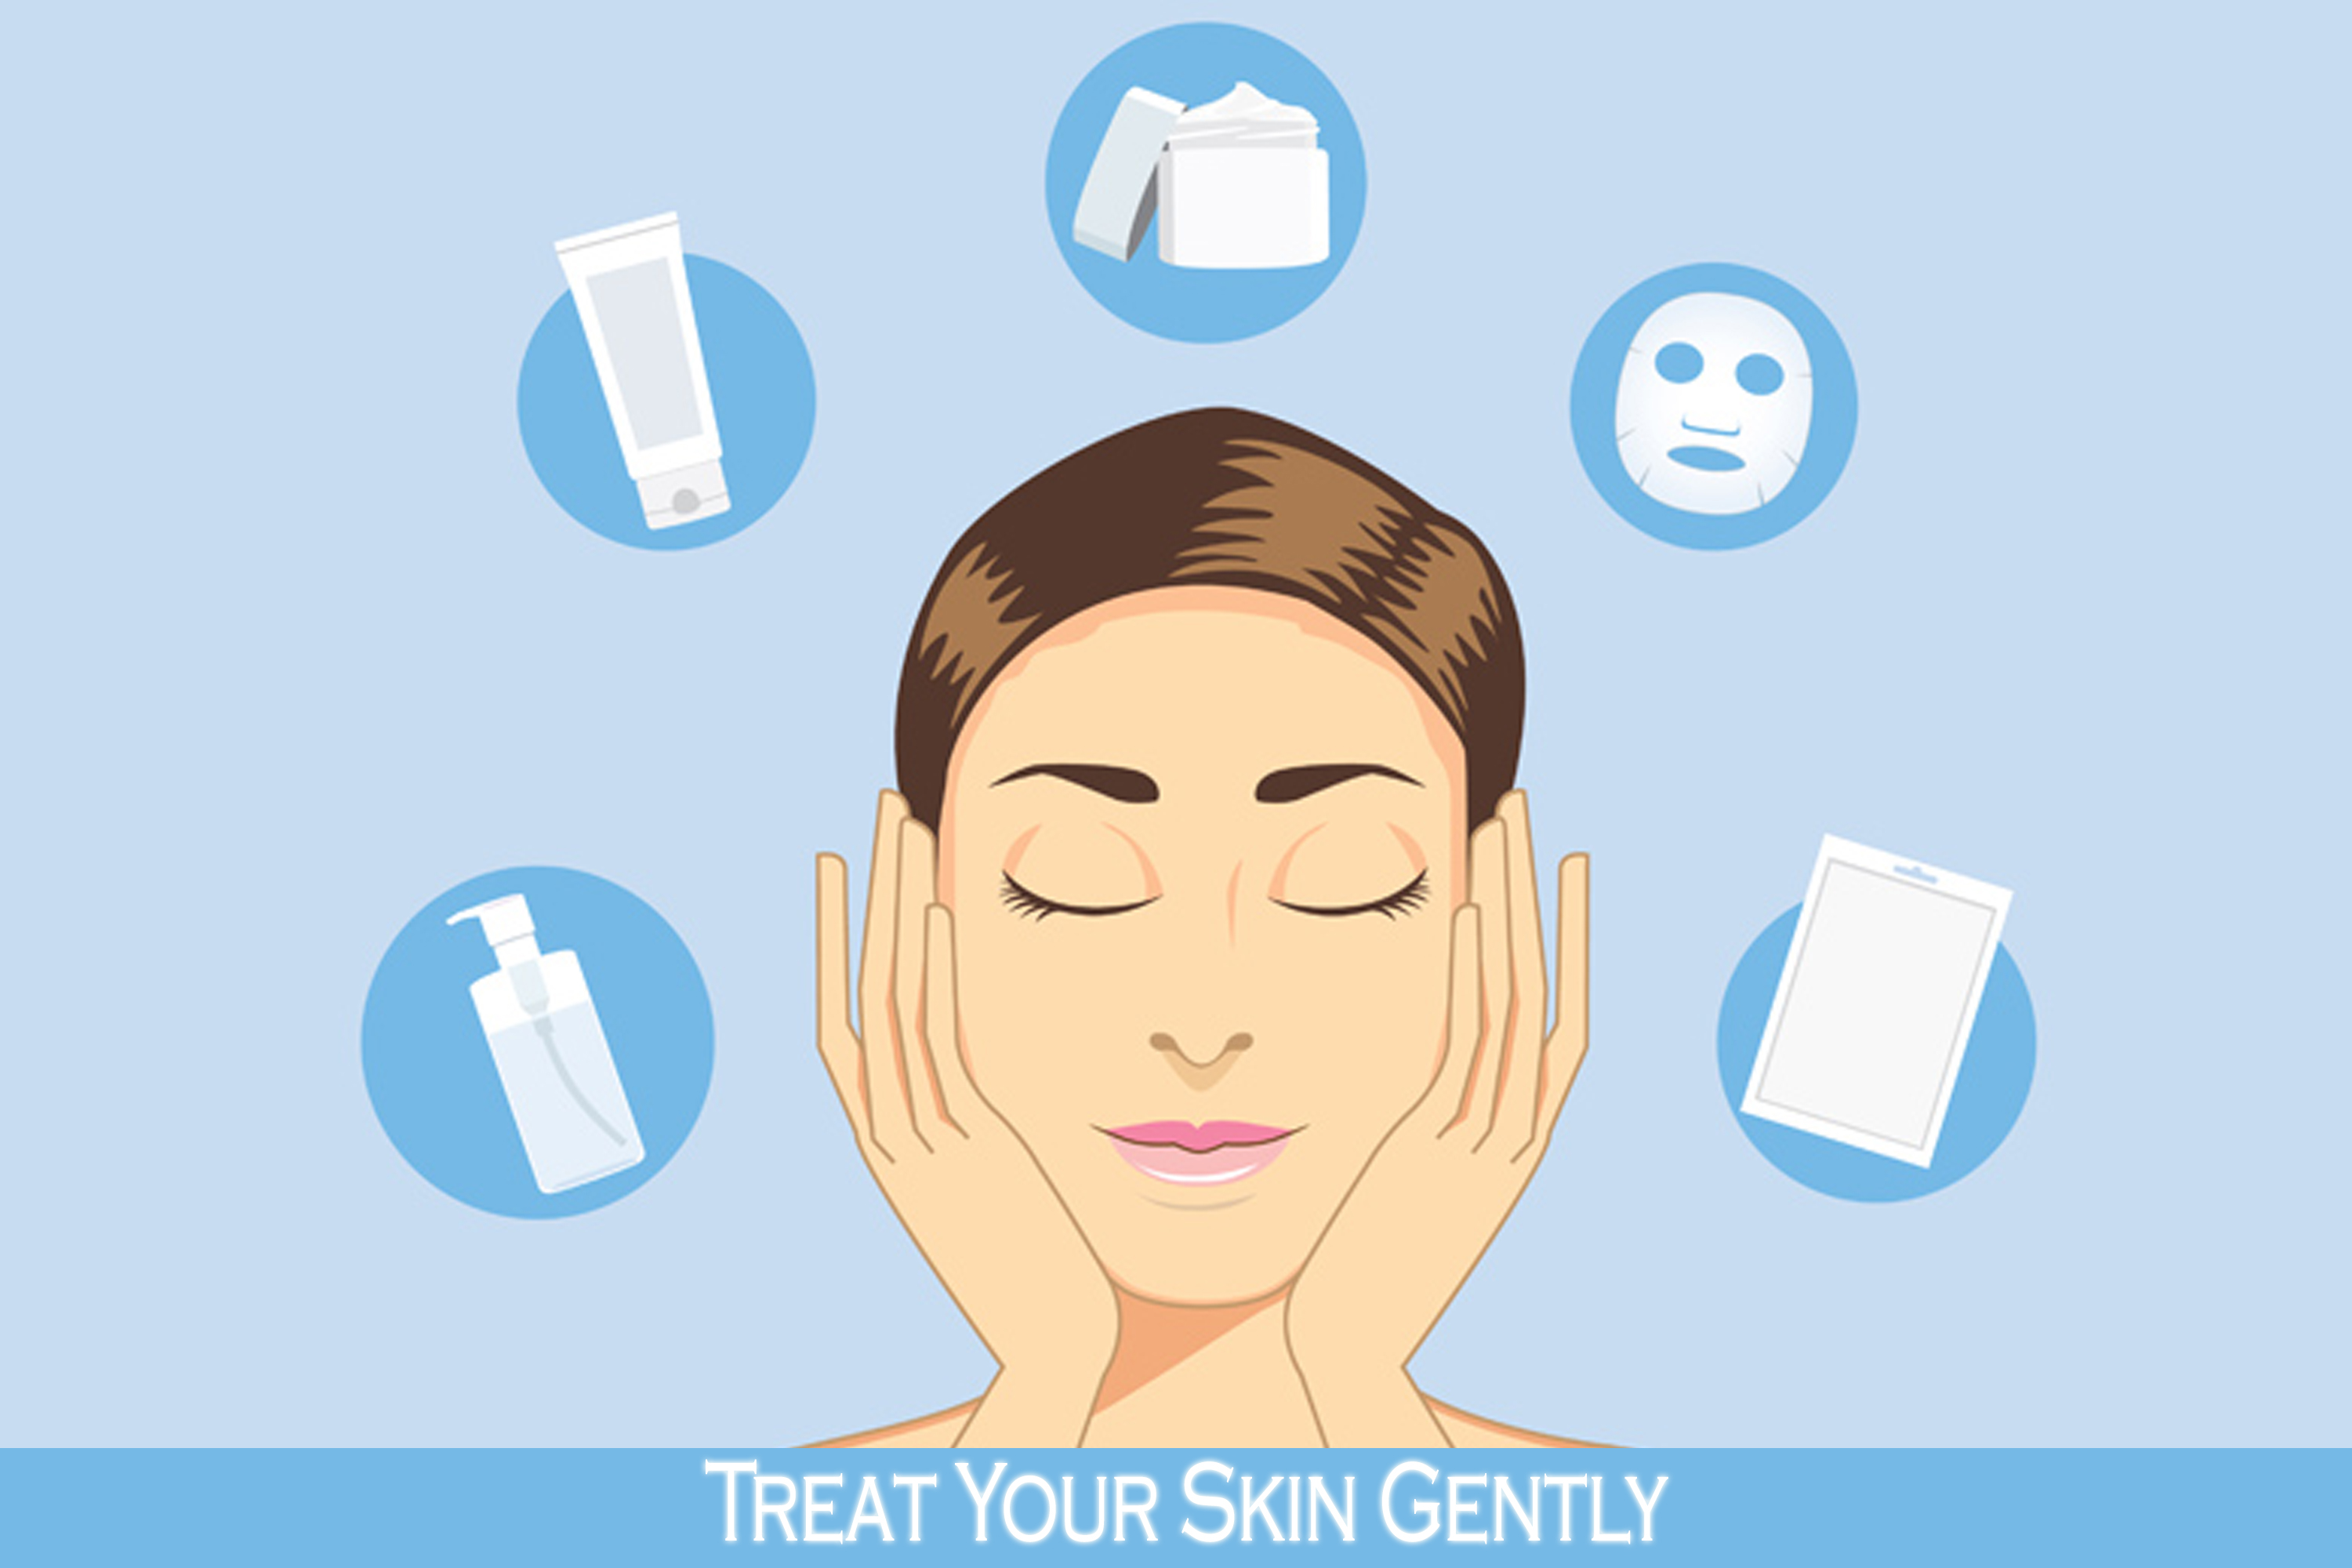 Skin care: Tips for healthy skin